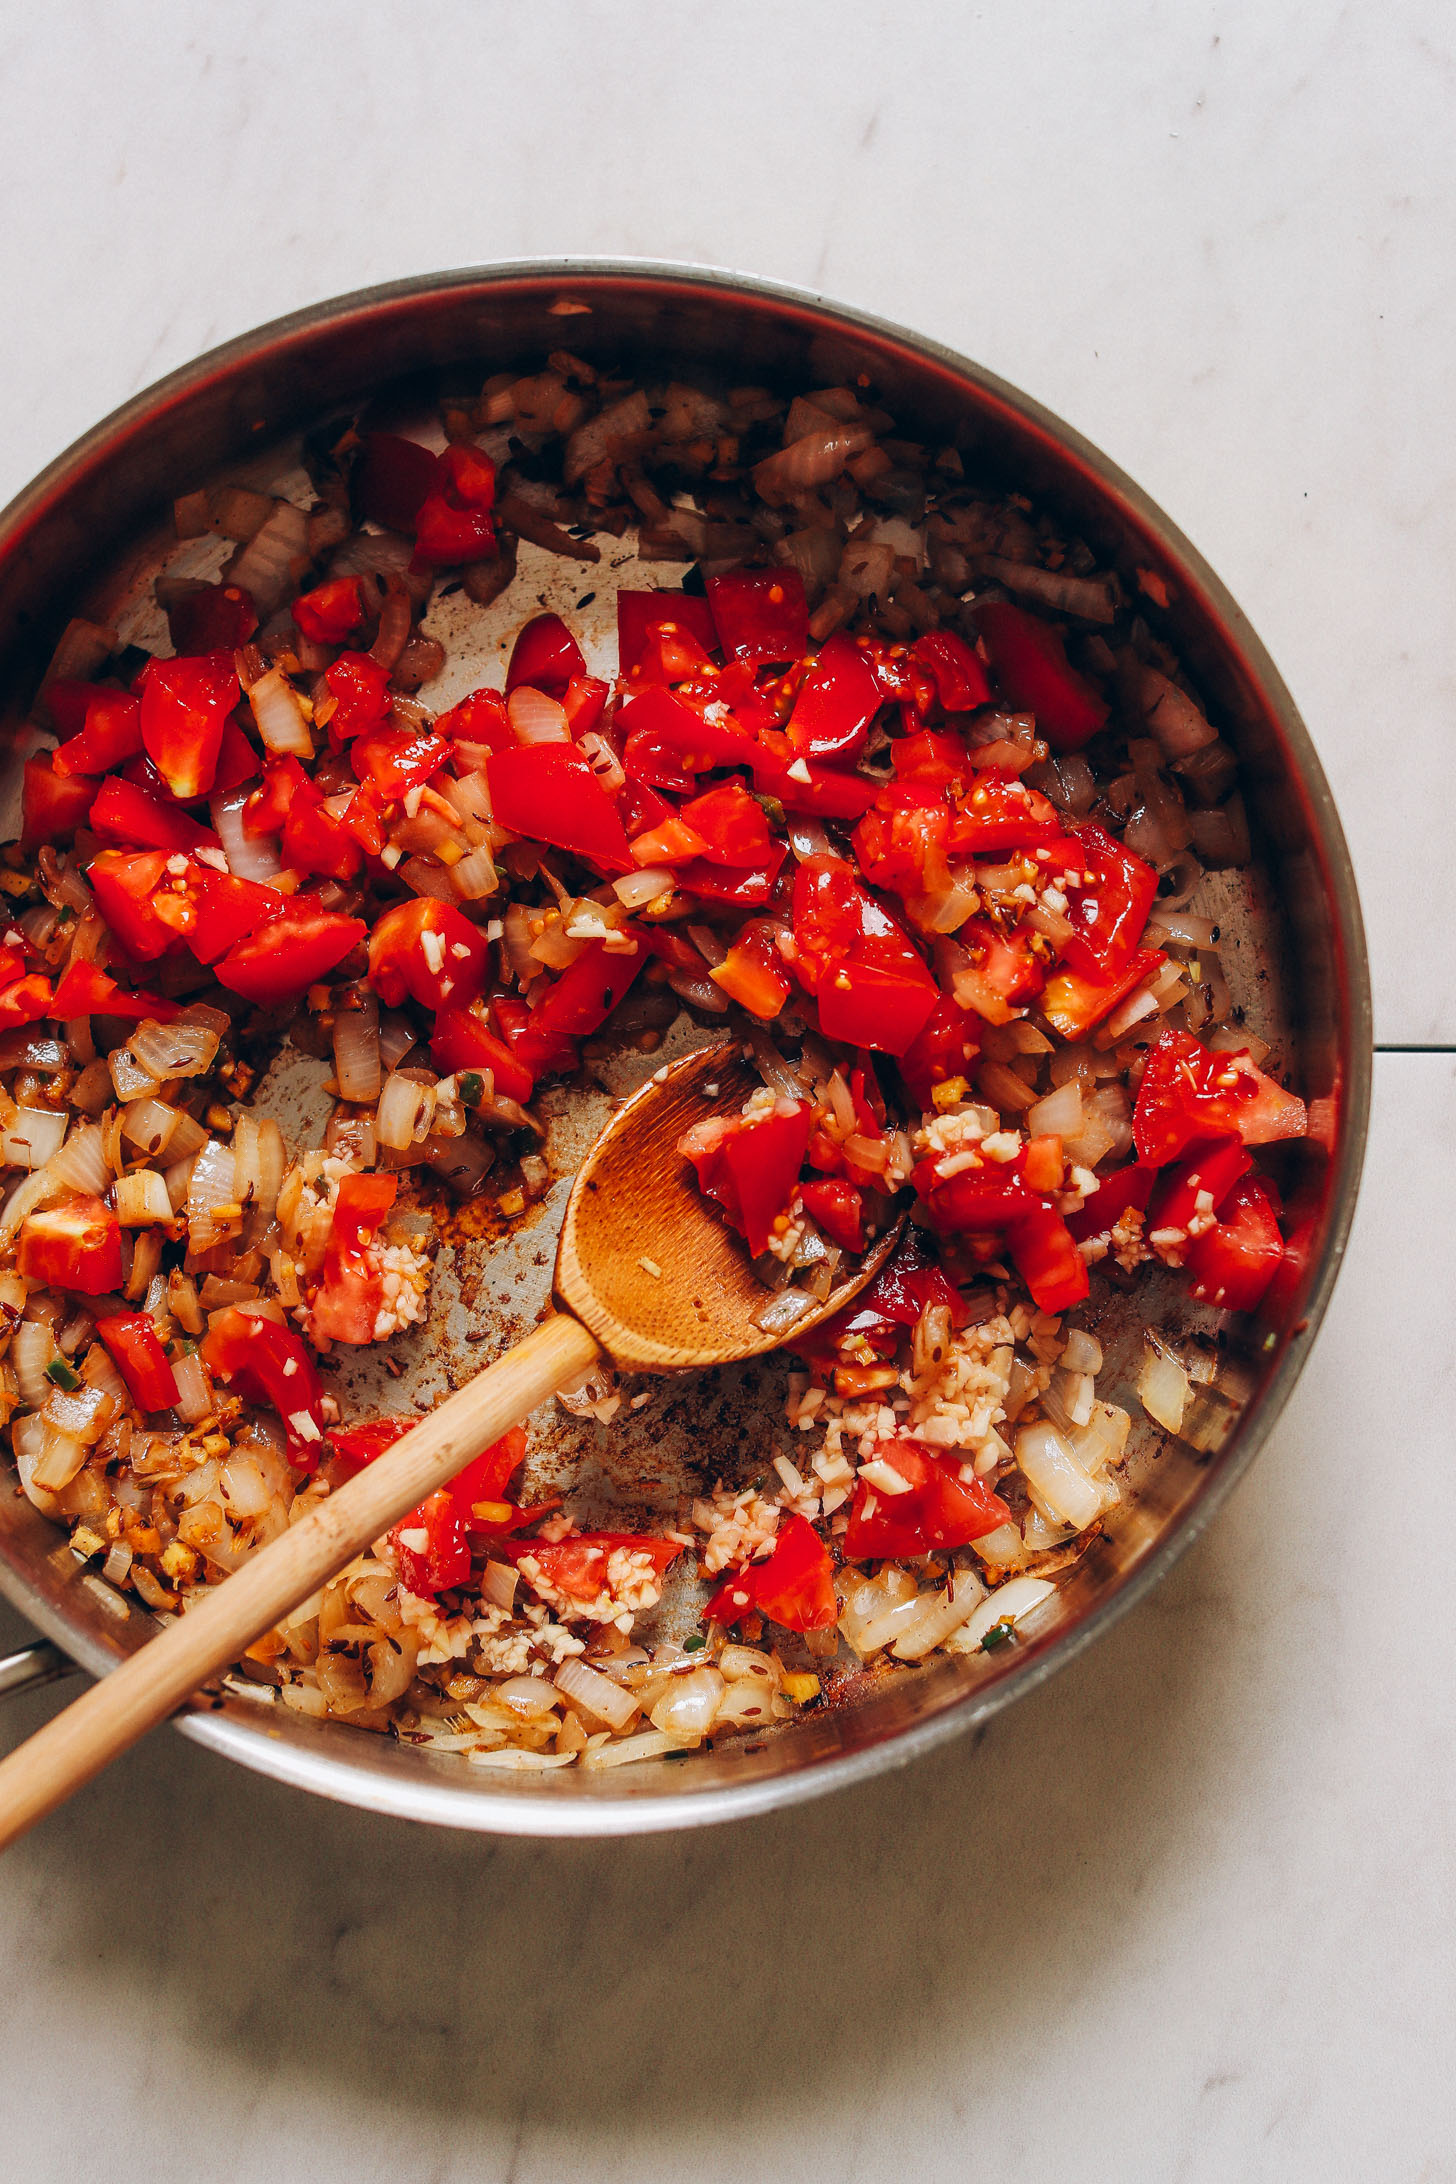 Overhead image of tomatoes, onion, and garlic being sautéed in a skillet with a wooden spoon stirring the ingredients